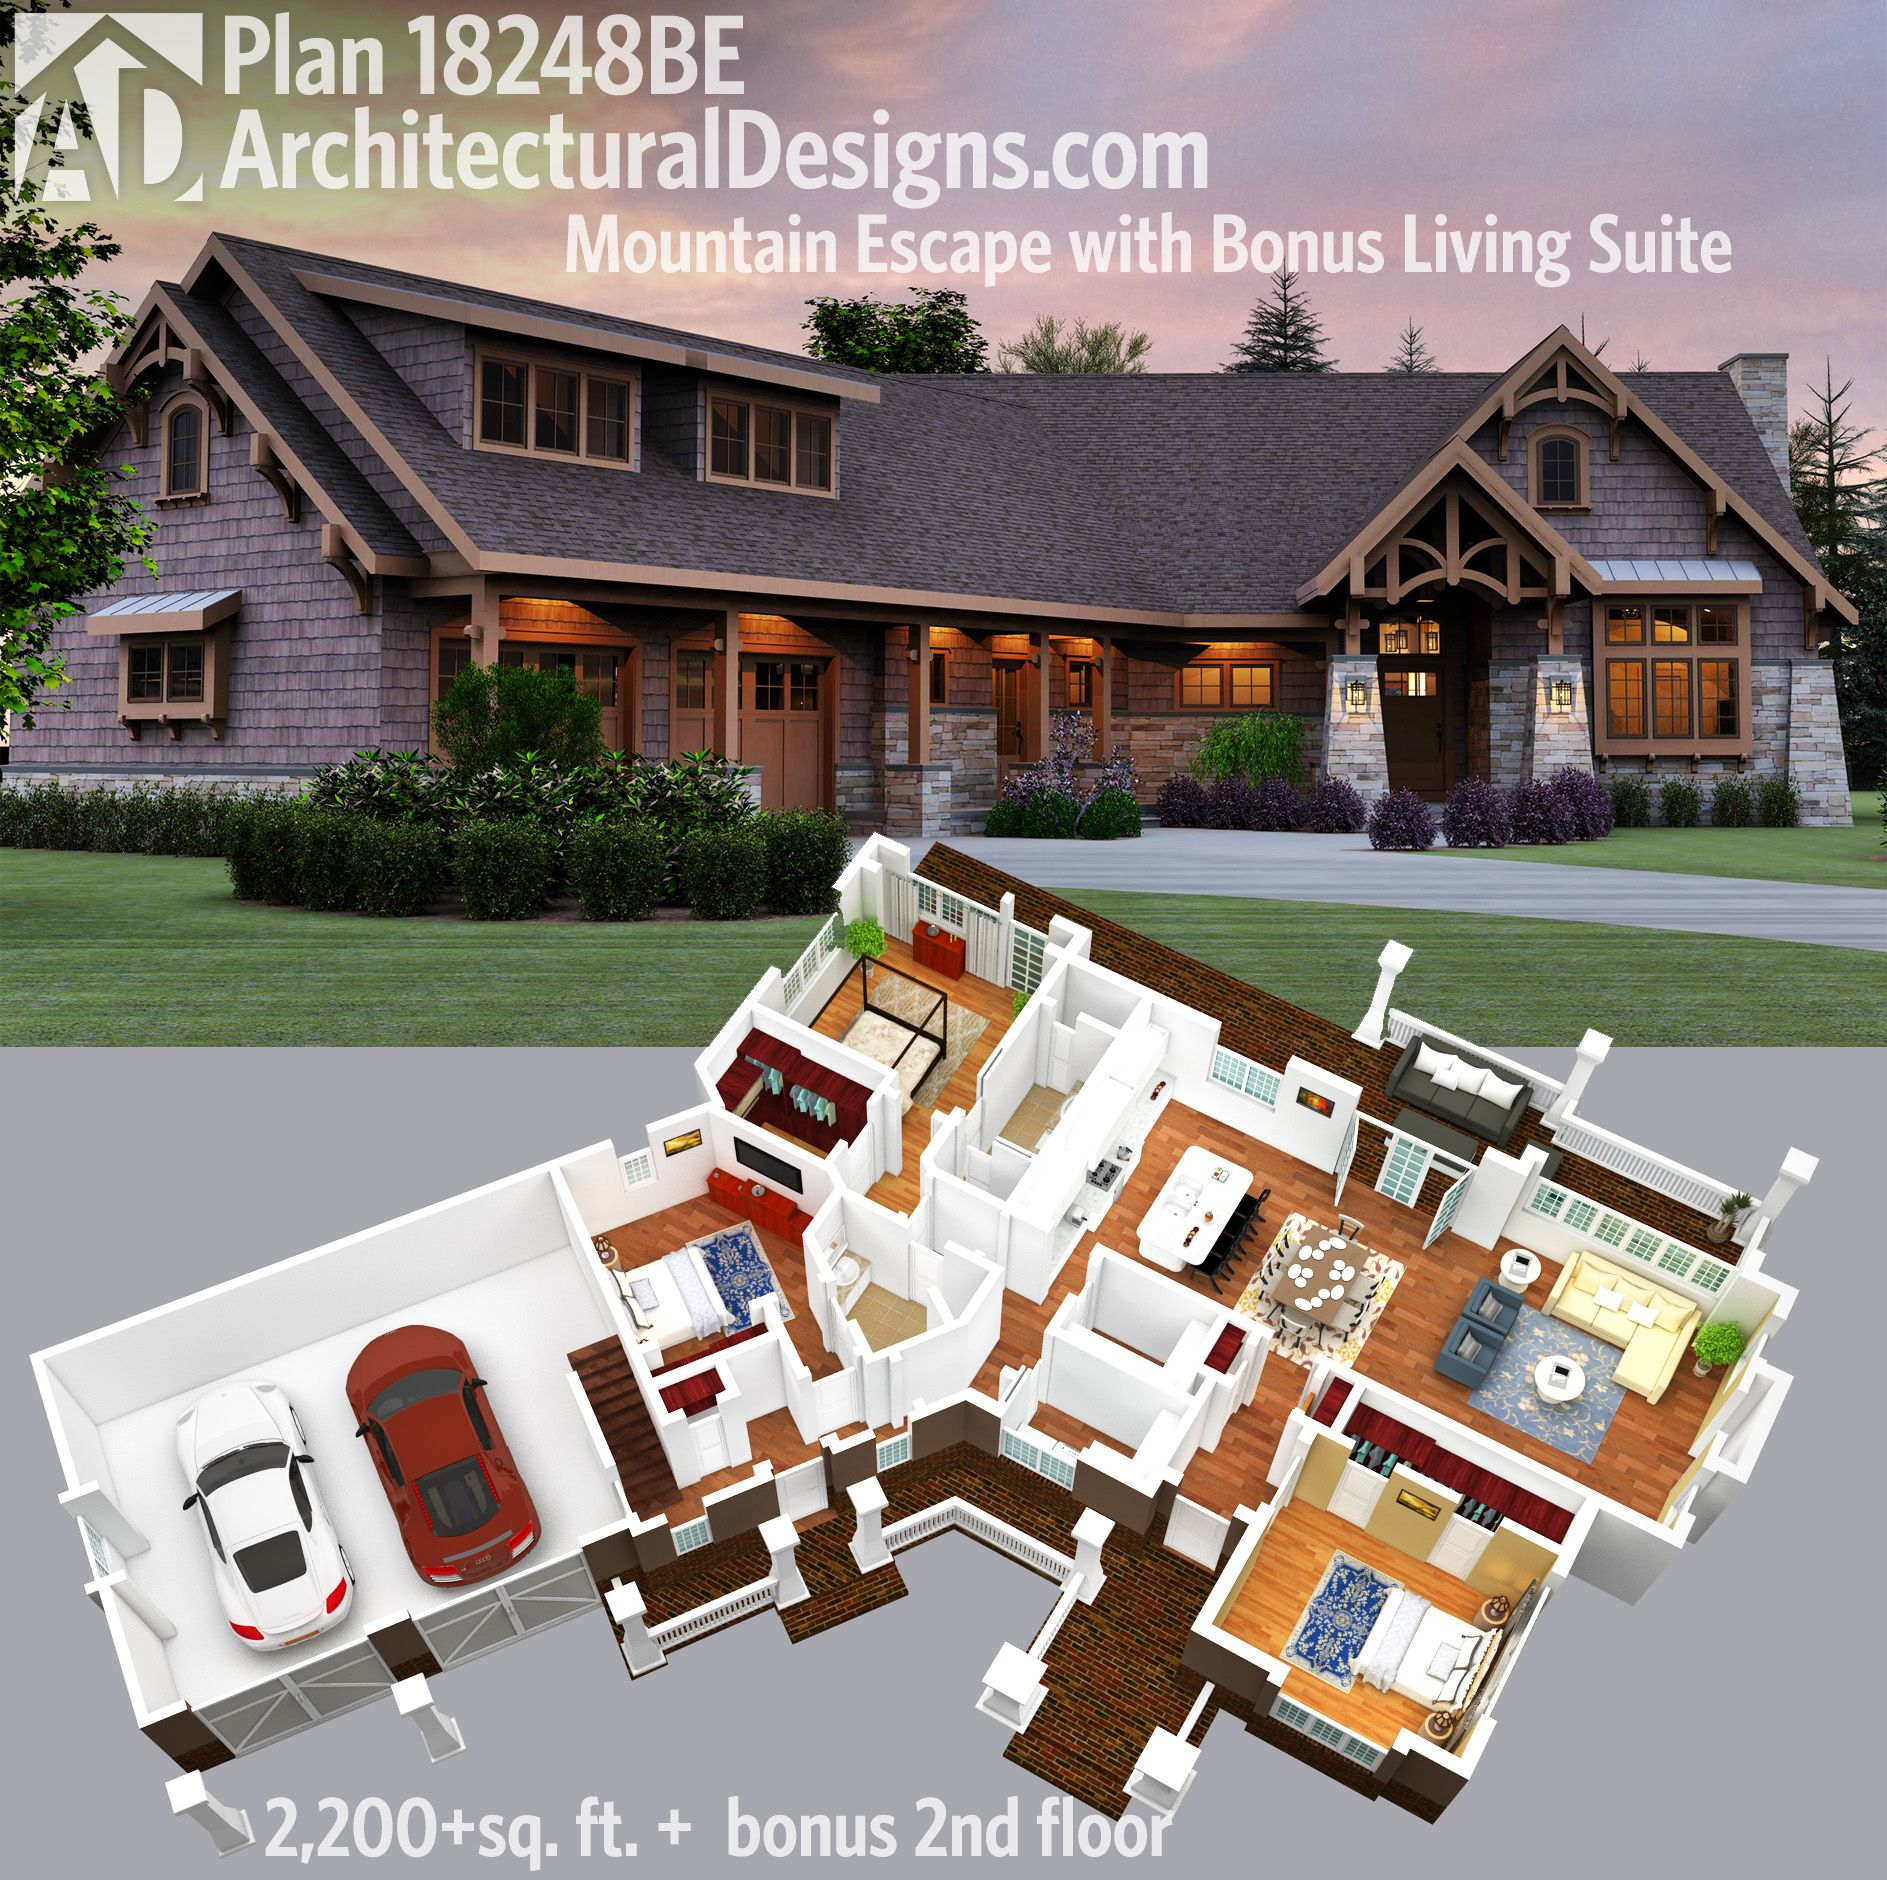 Architectural Designs Mountain Home Plan 18248BE Gives You Over 2,200 Sq.  Ft. Of Living